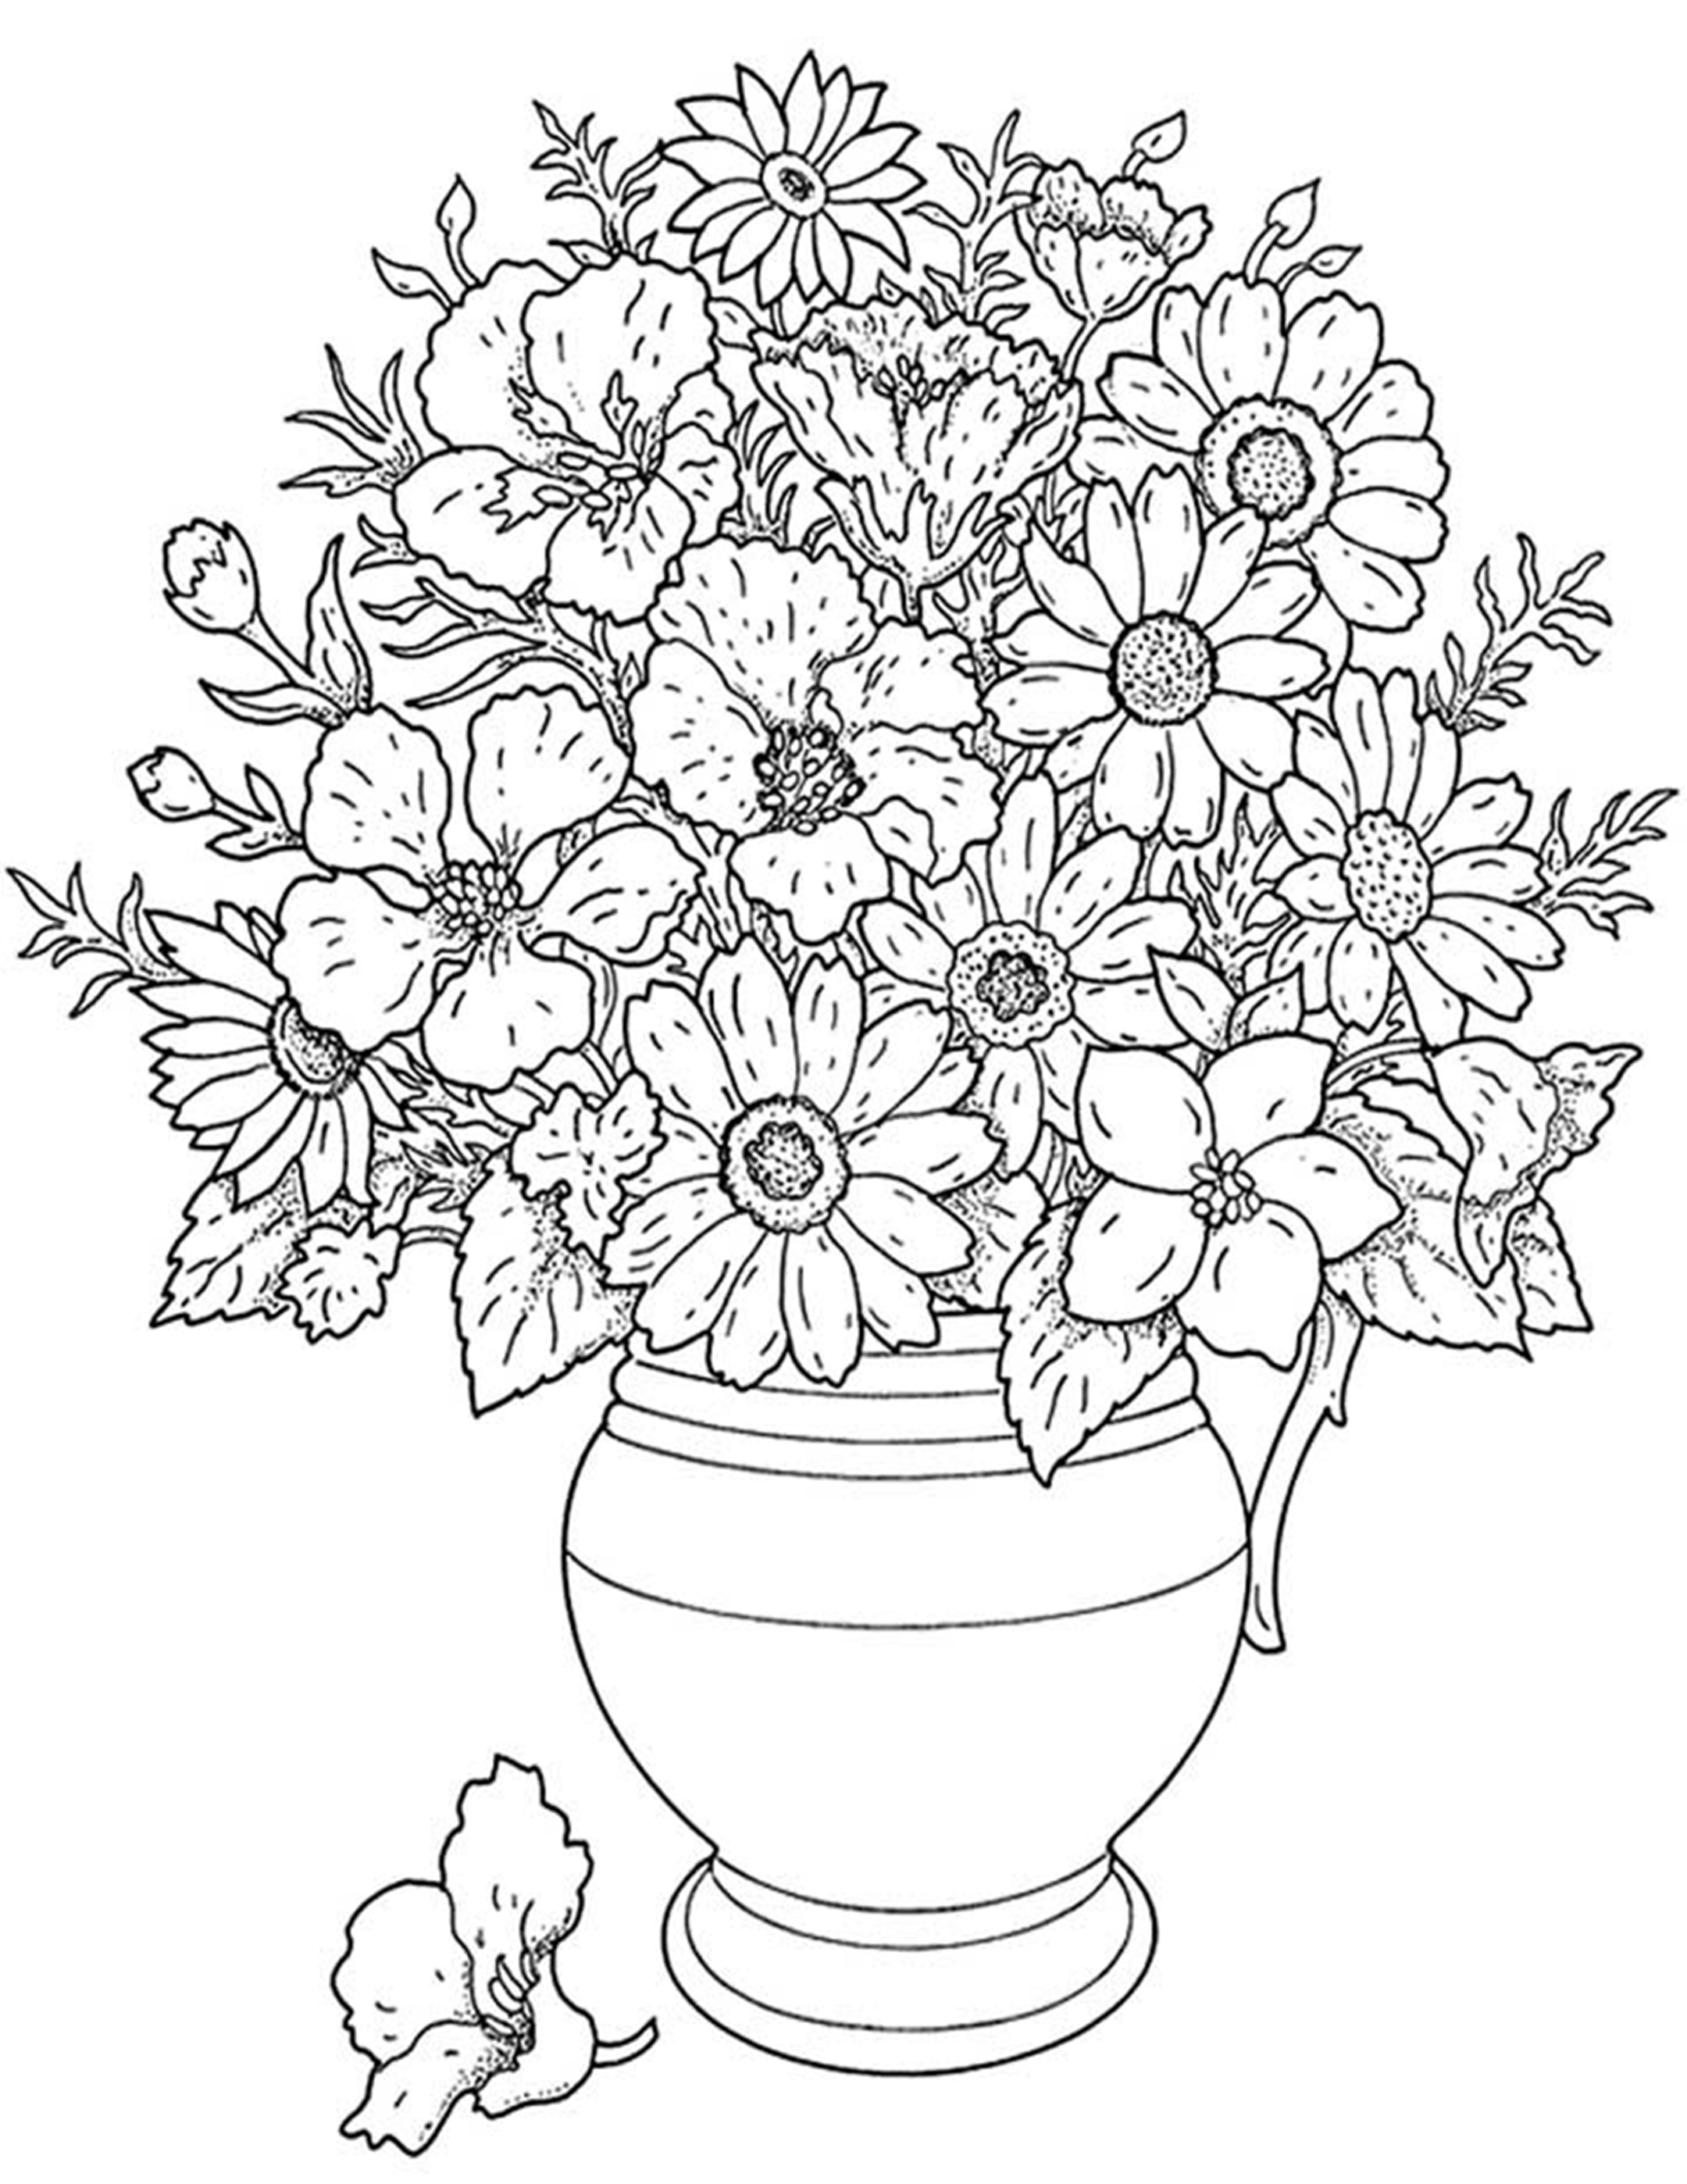 Coloring pictures of bouquet of flowers